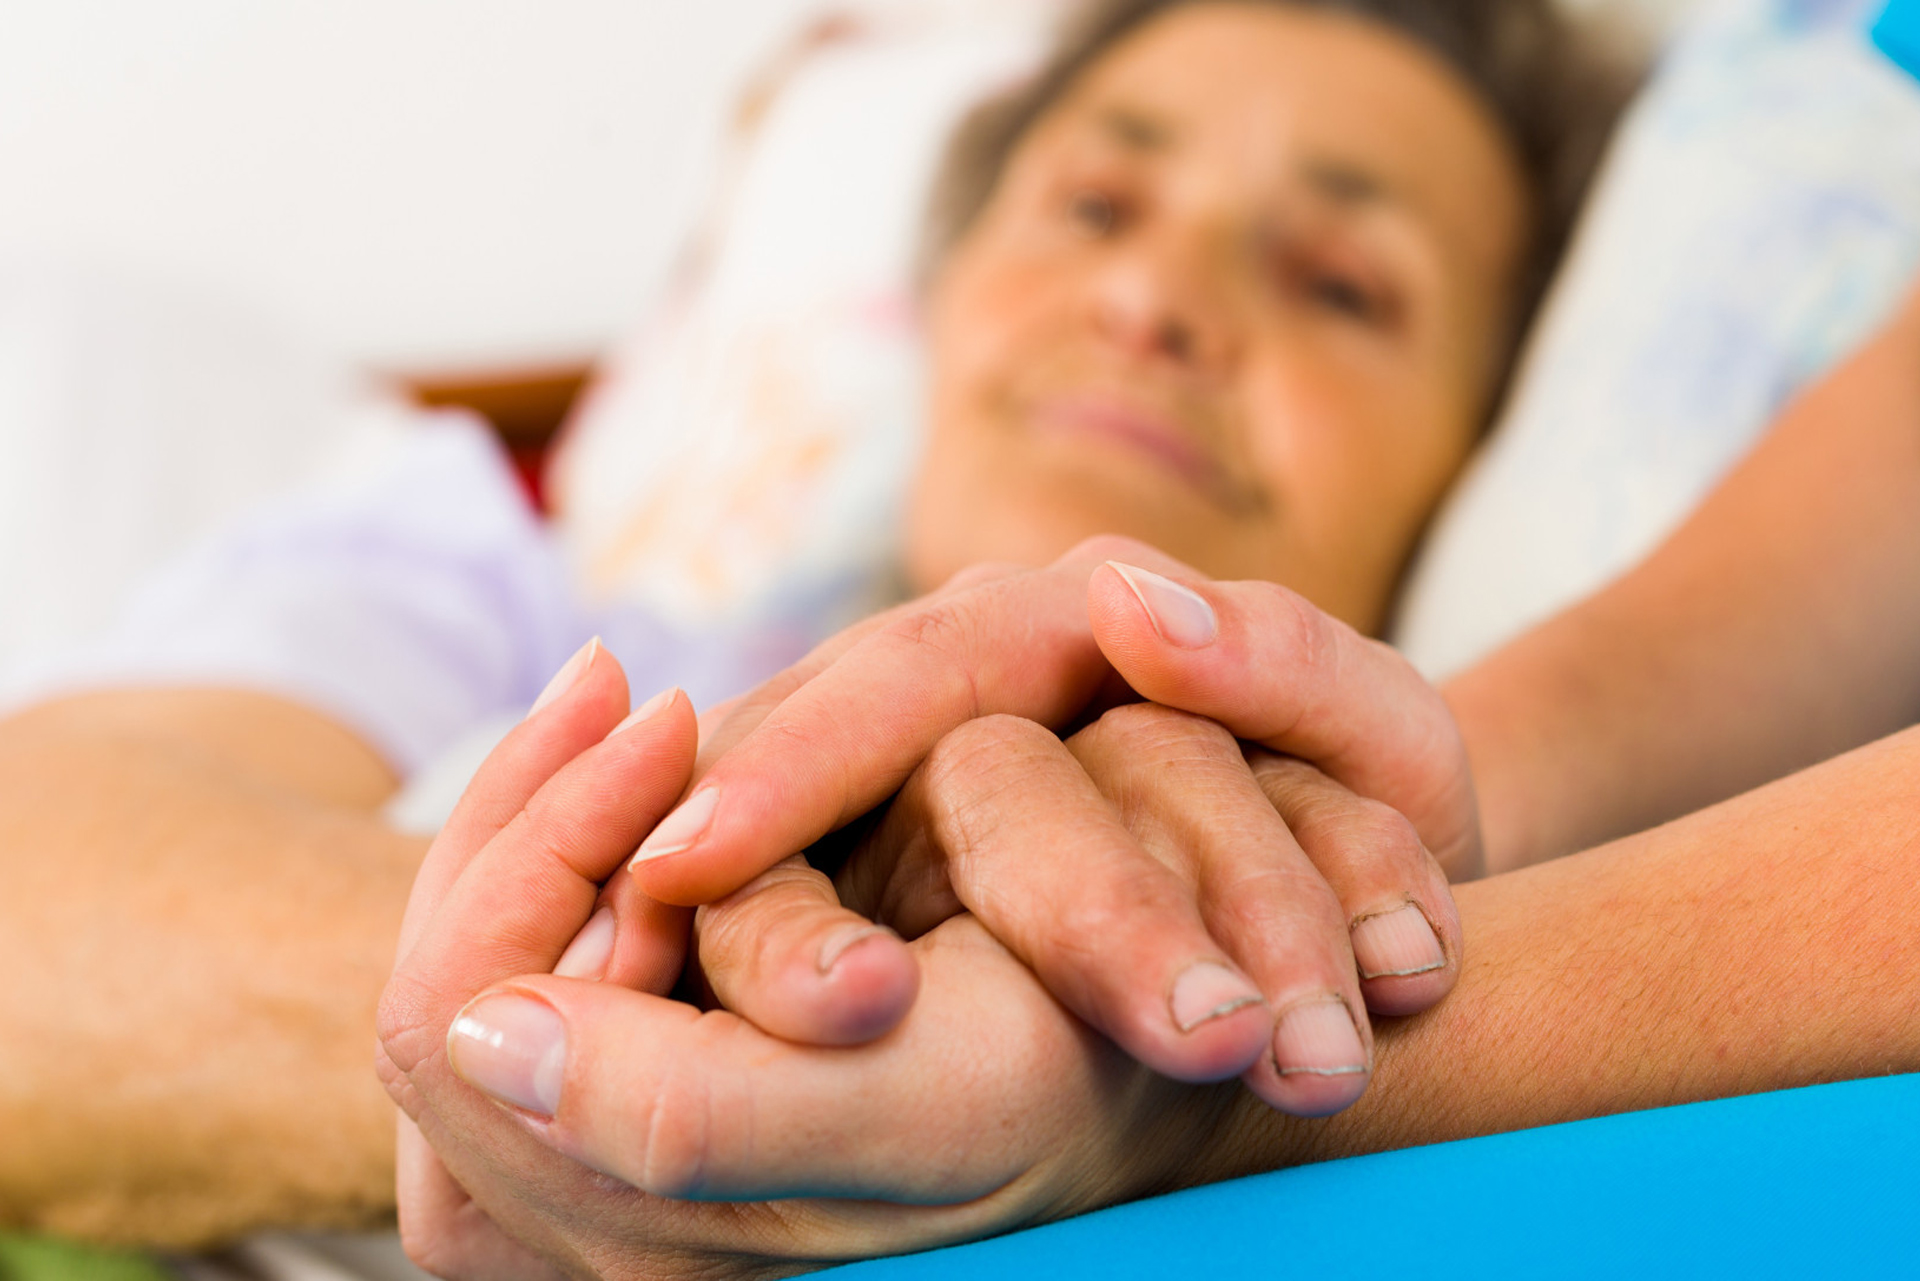 holding hand of patient